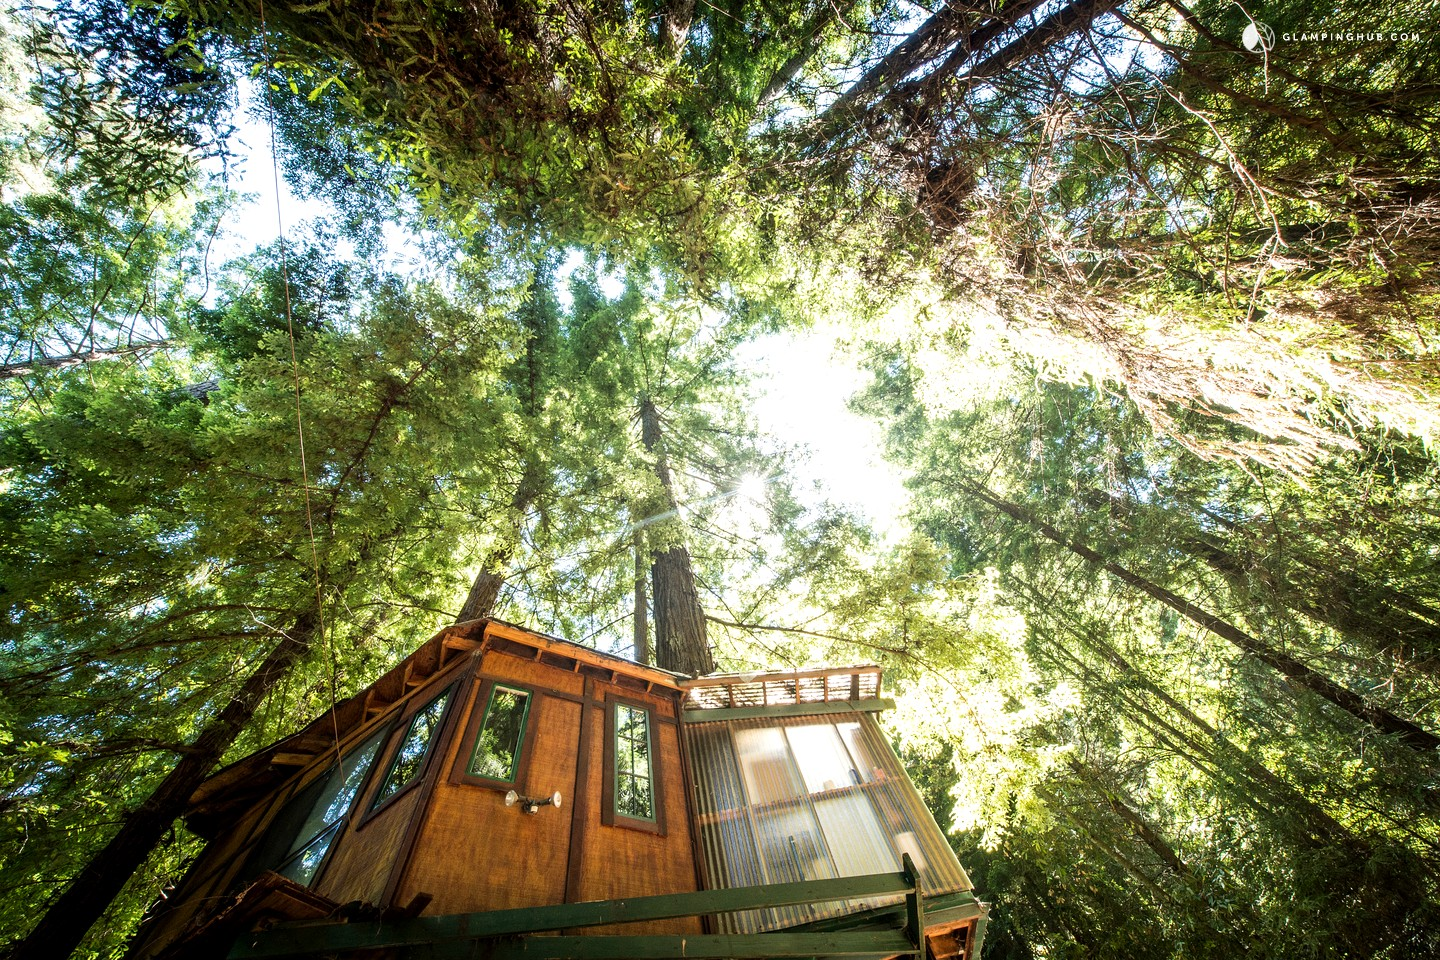 Photo of Glamping Tree House in Santa Cruz Mountains near Monterey Bay, CA